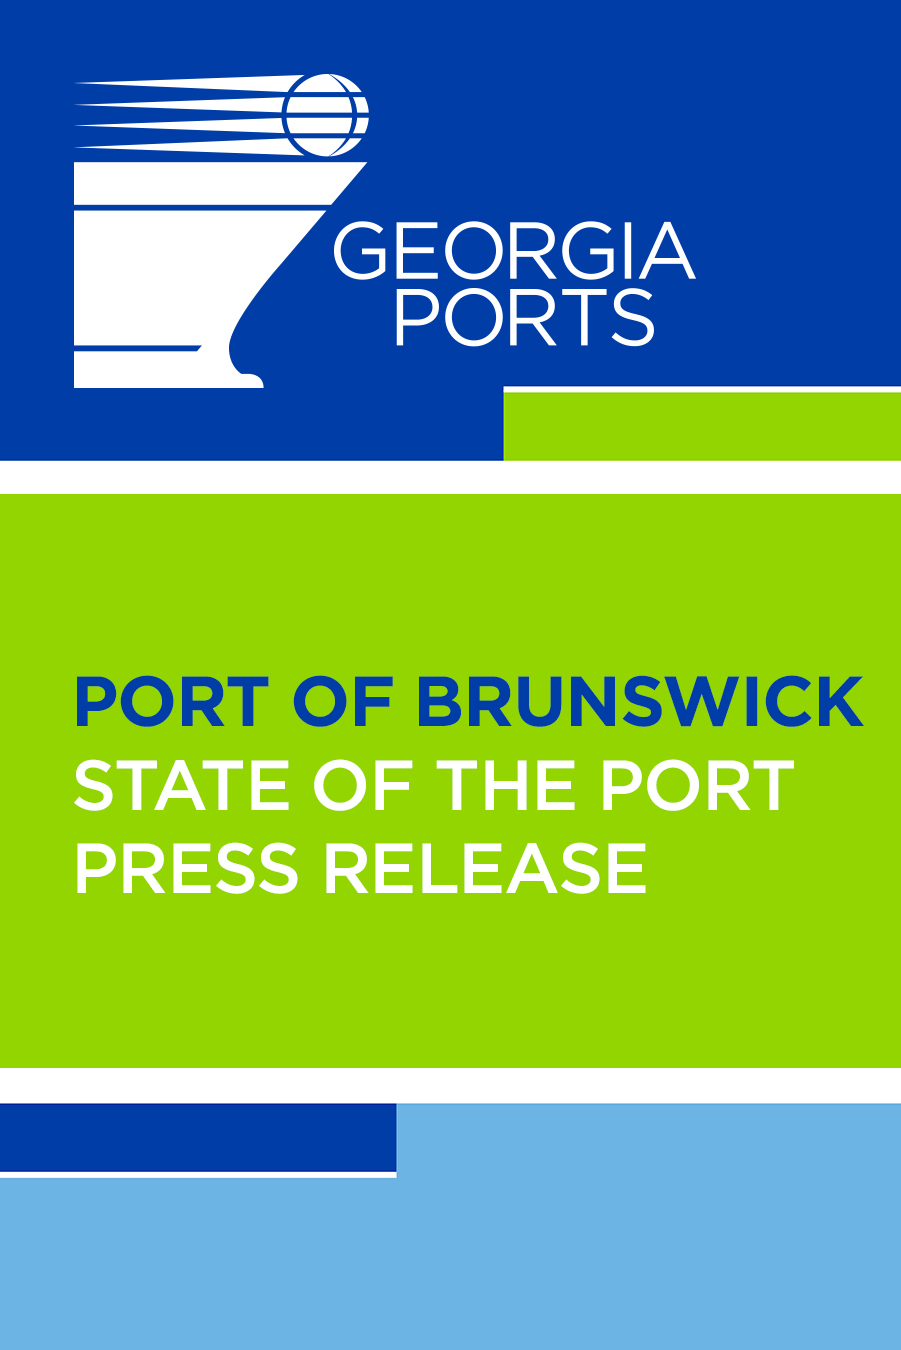 CLICK TO DOWNLOAD   2018 Georgia Ports State of the Port Press Release - Brunswick (PDF - 115K)